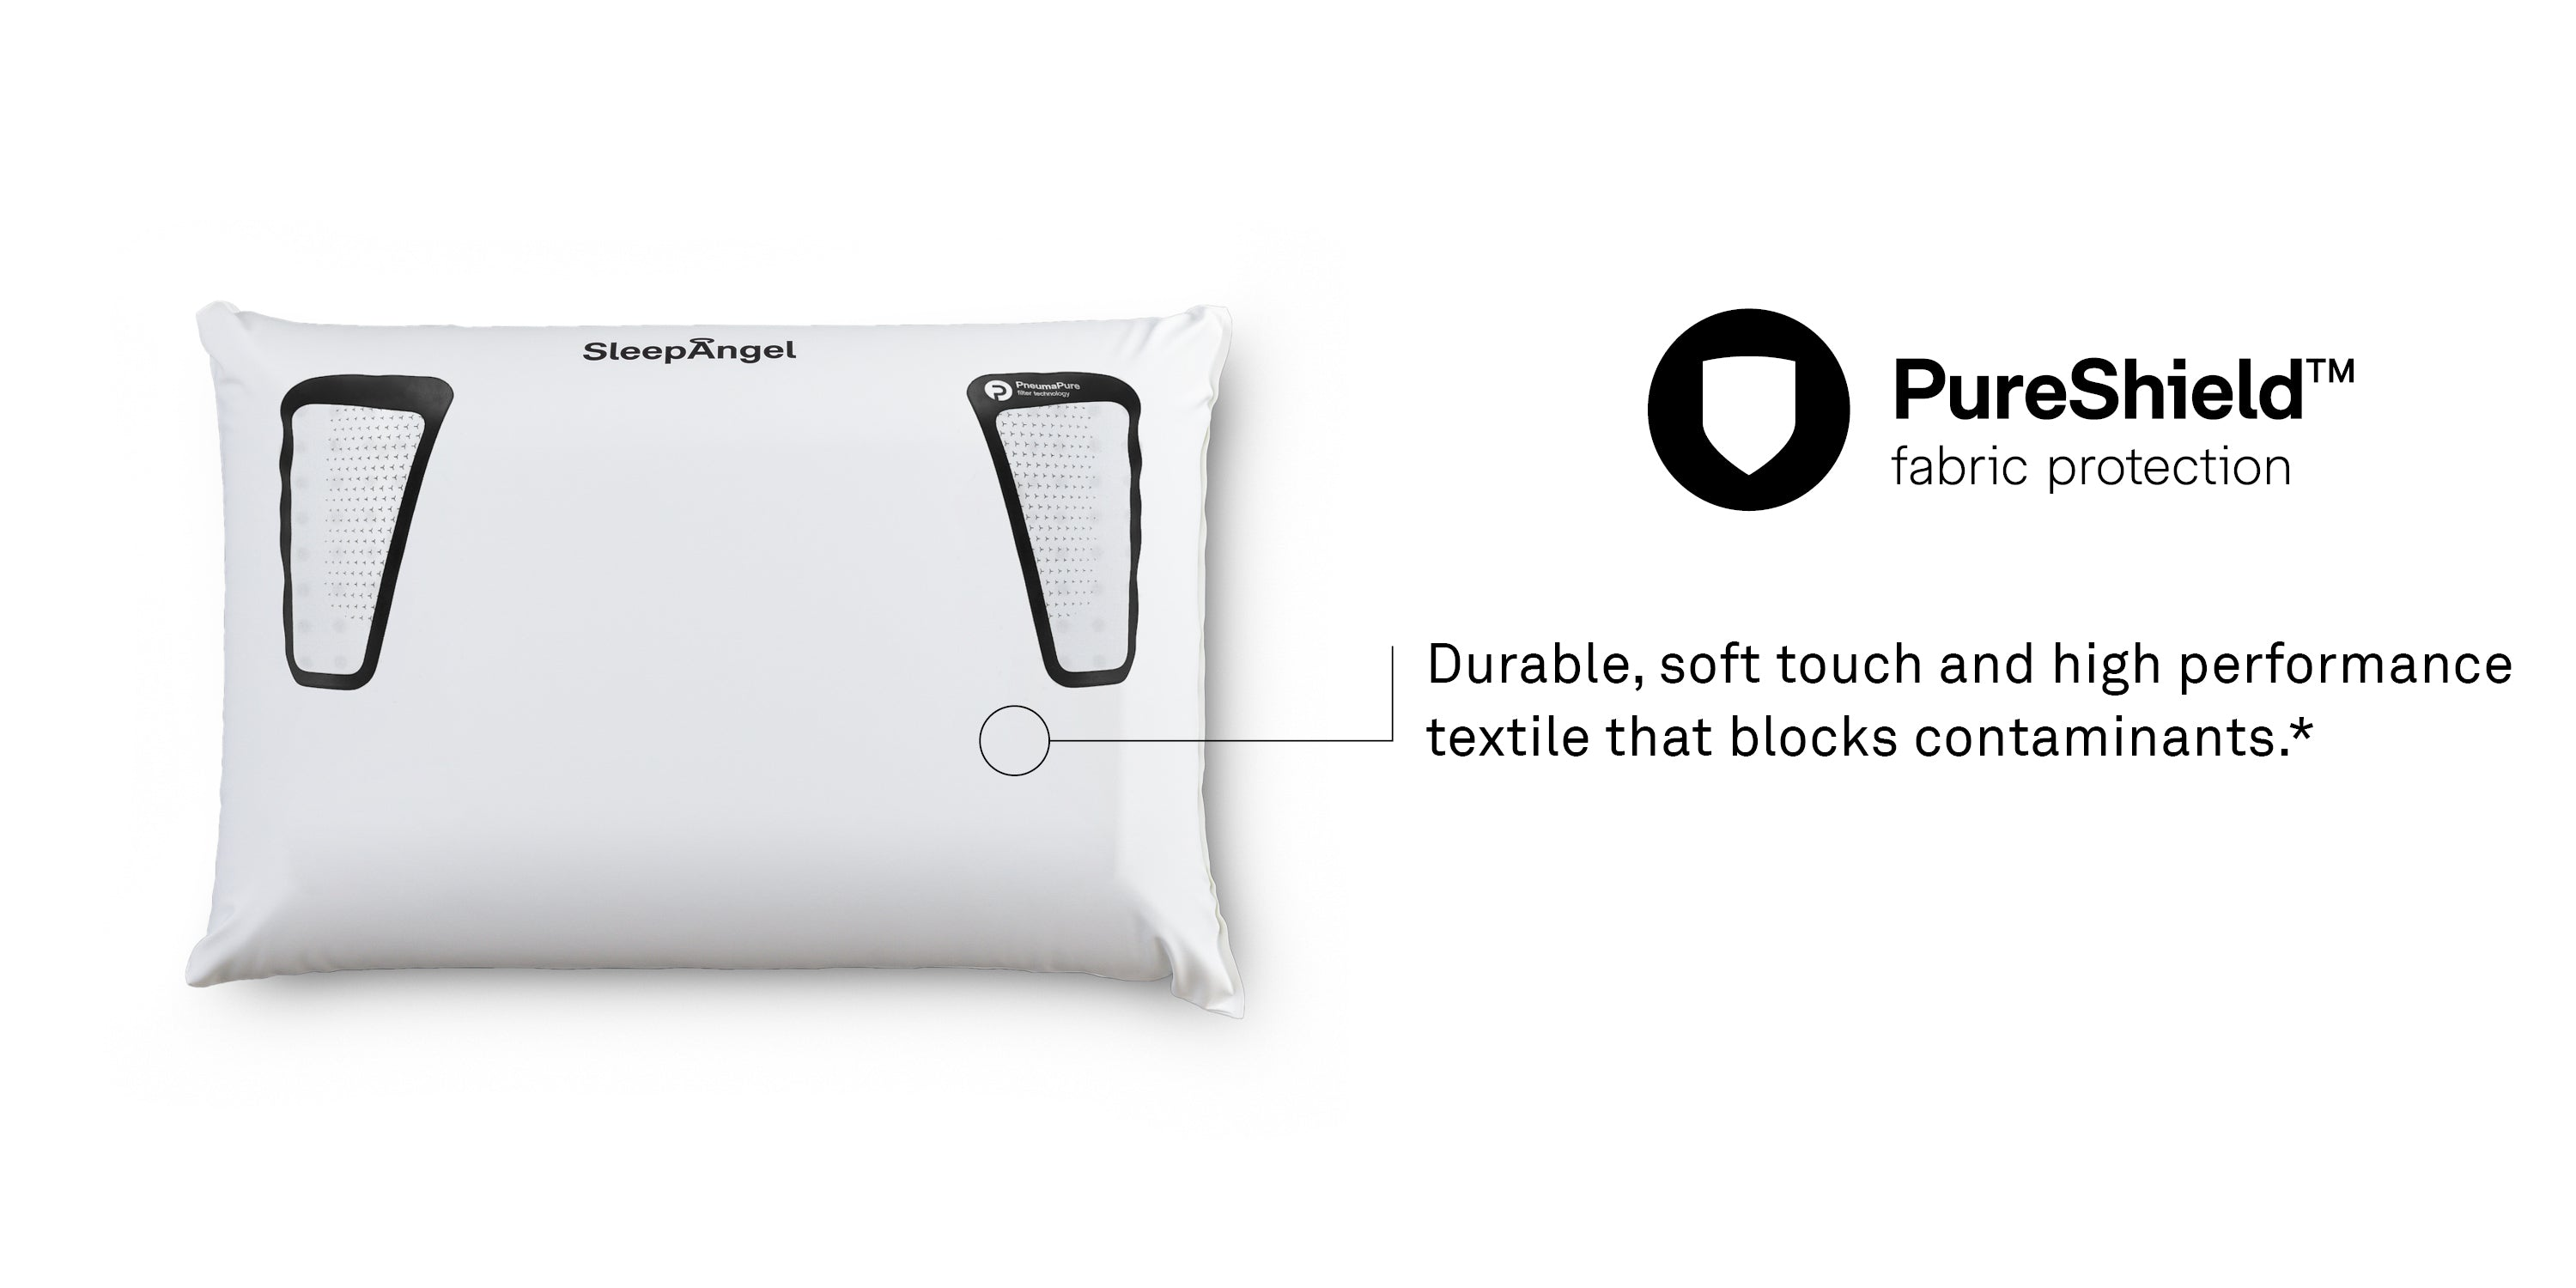 Pureshield fabric protection